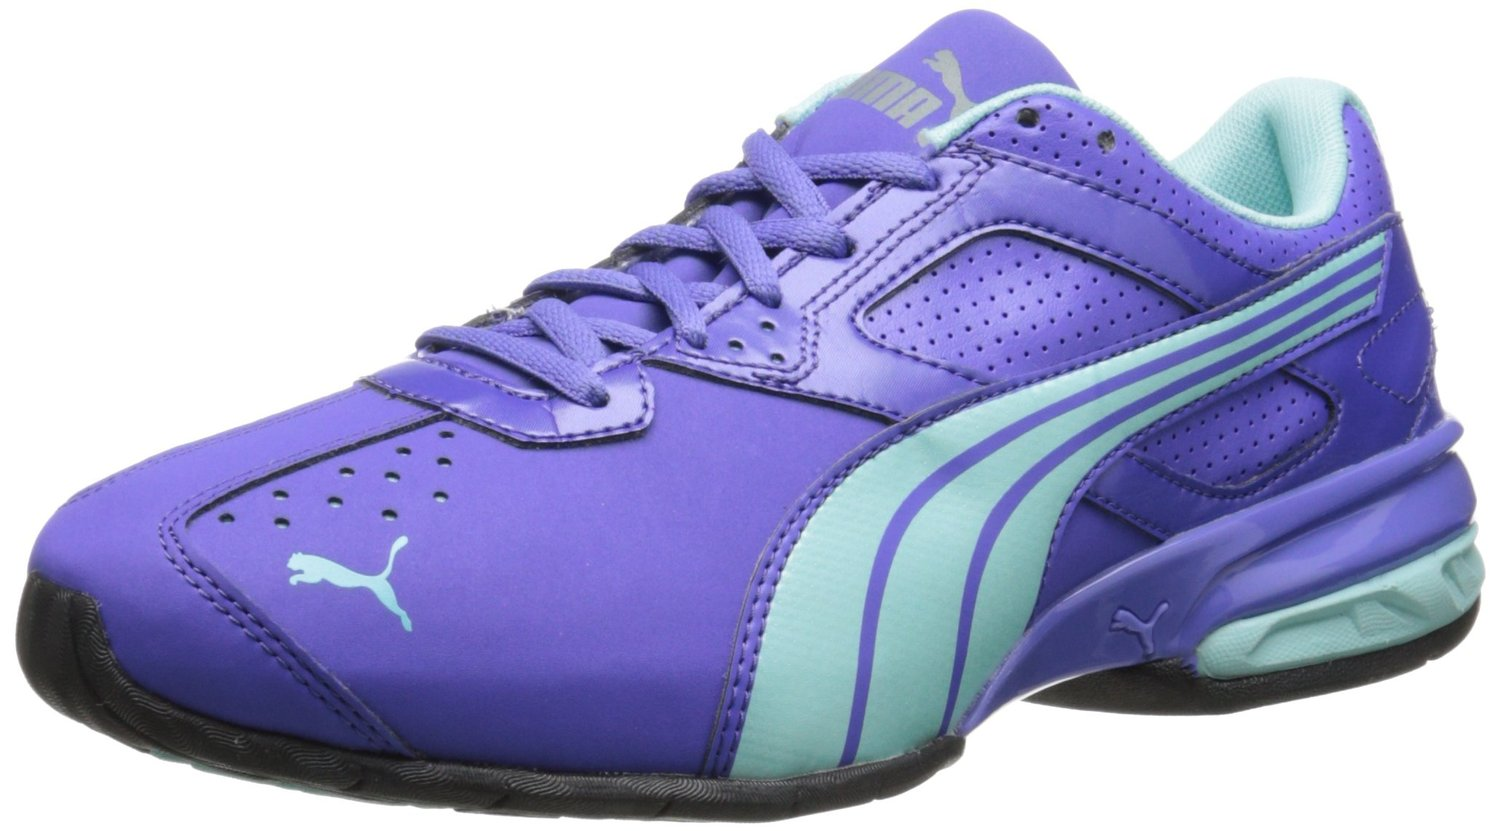 PUMA Tazon 5 Cross-Training Shoe Blue IrisAruba Blue 24c6c9a27